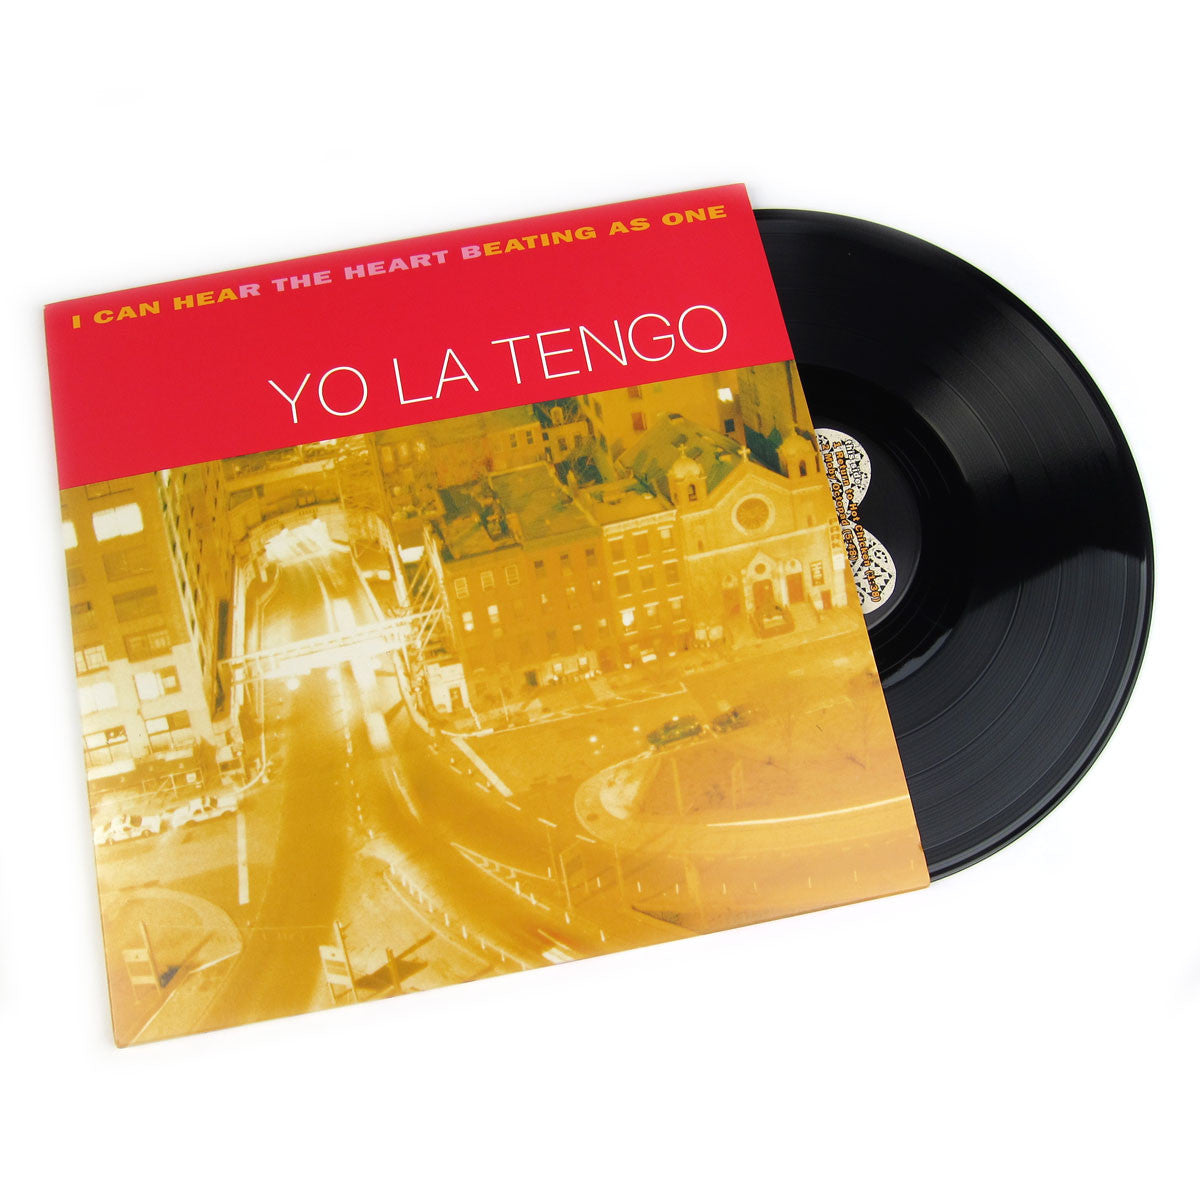 Yo La Tengo: I Can Hear The Heart Beating As One Vinyl 2LP